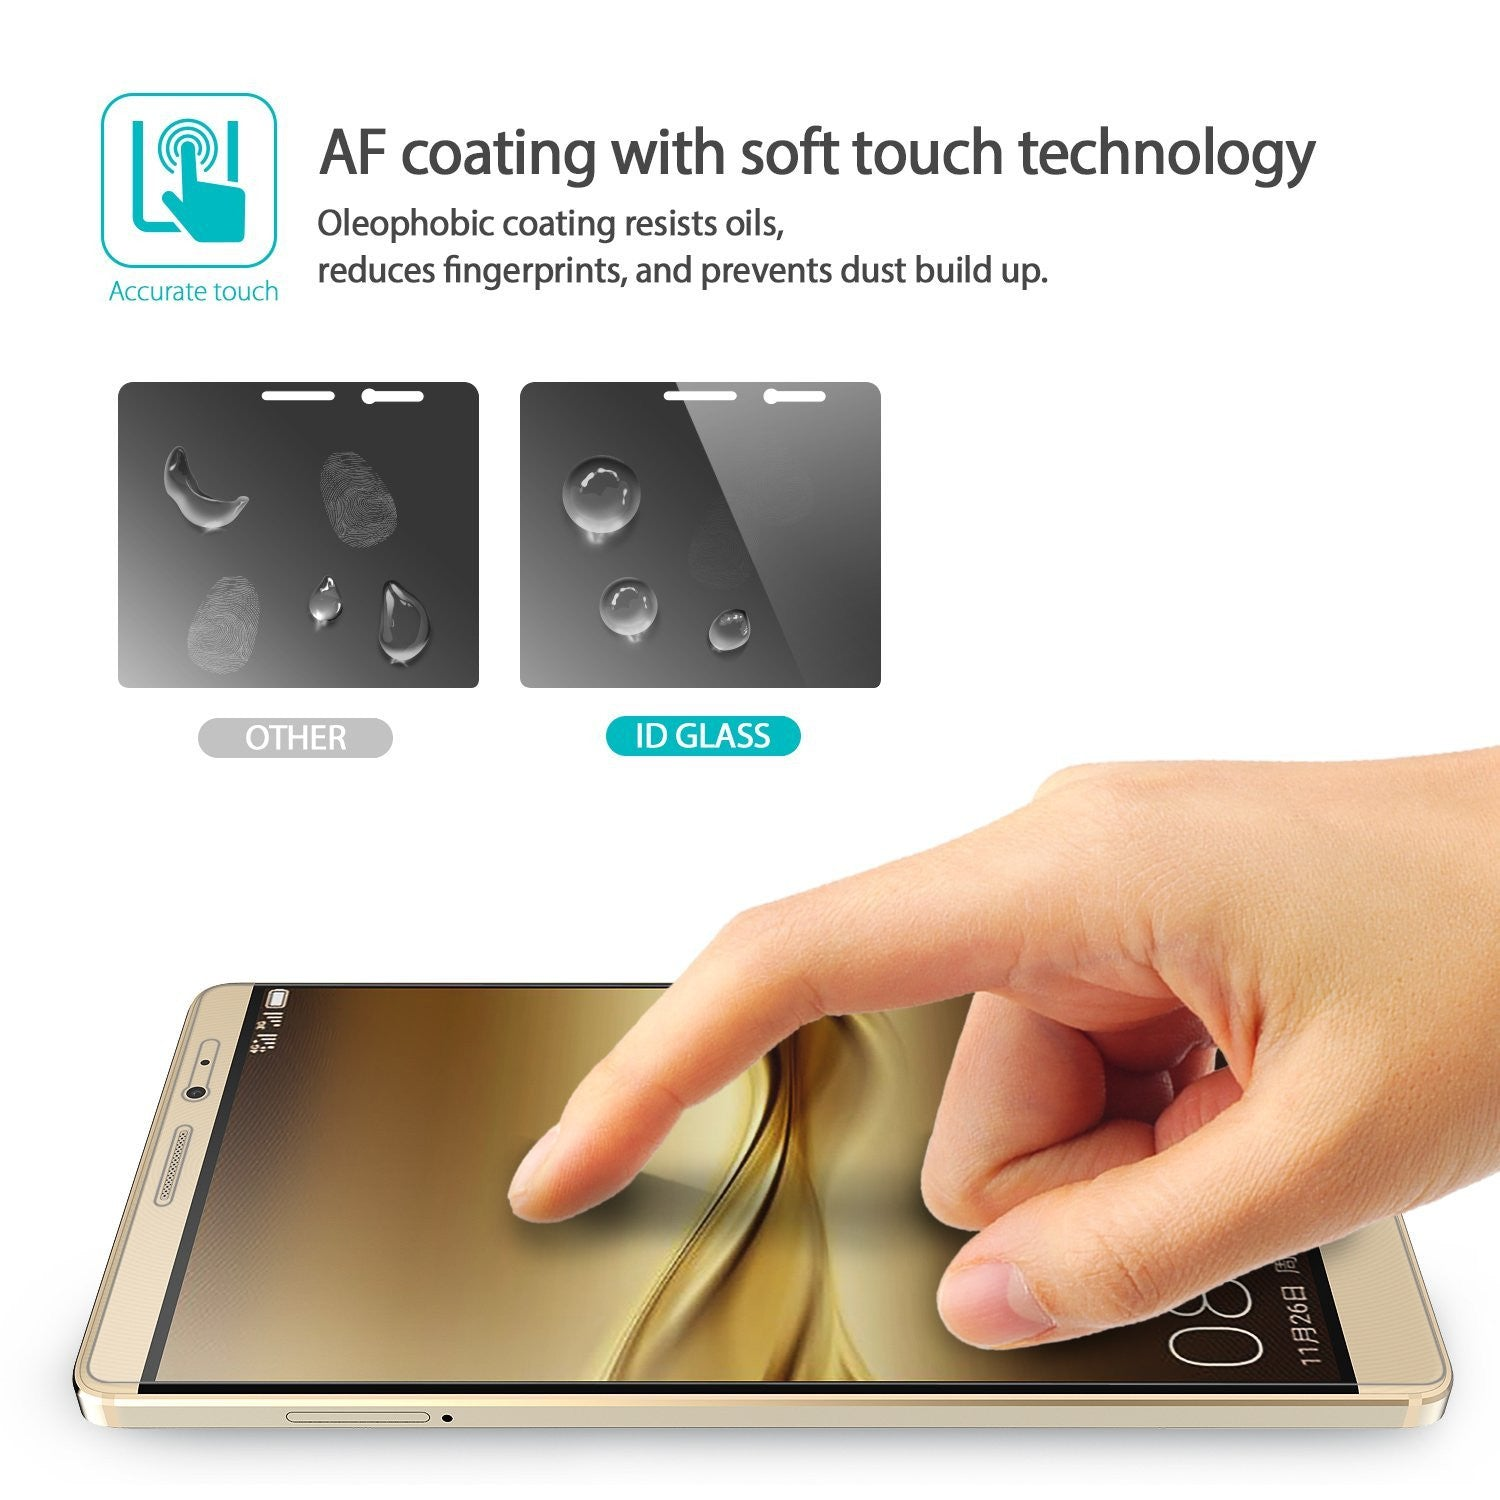 af coating with soft touch technology